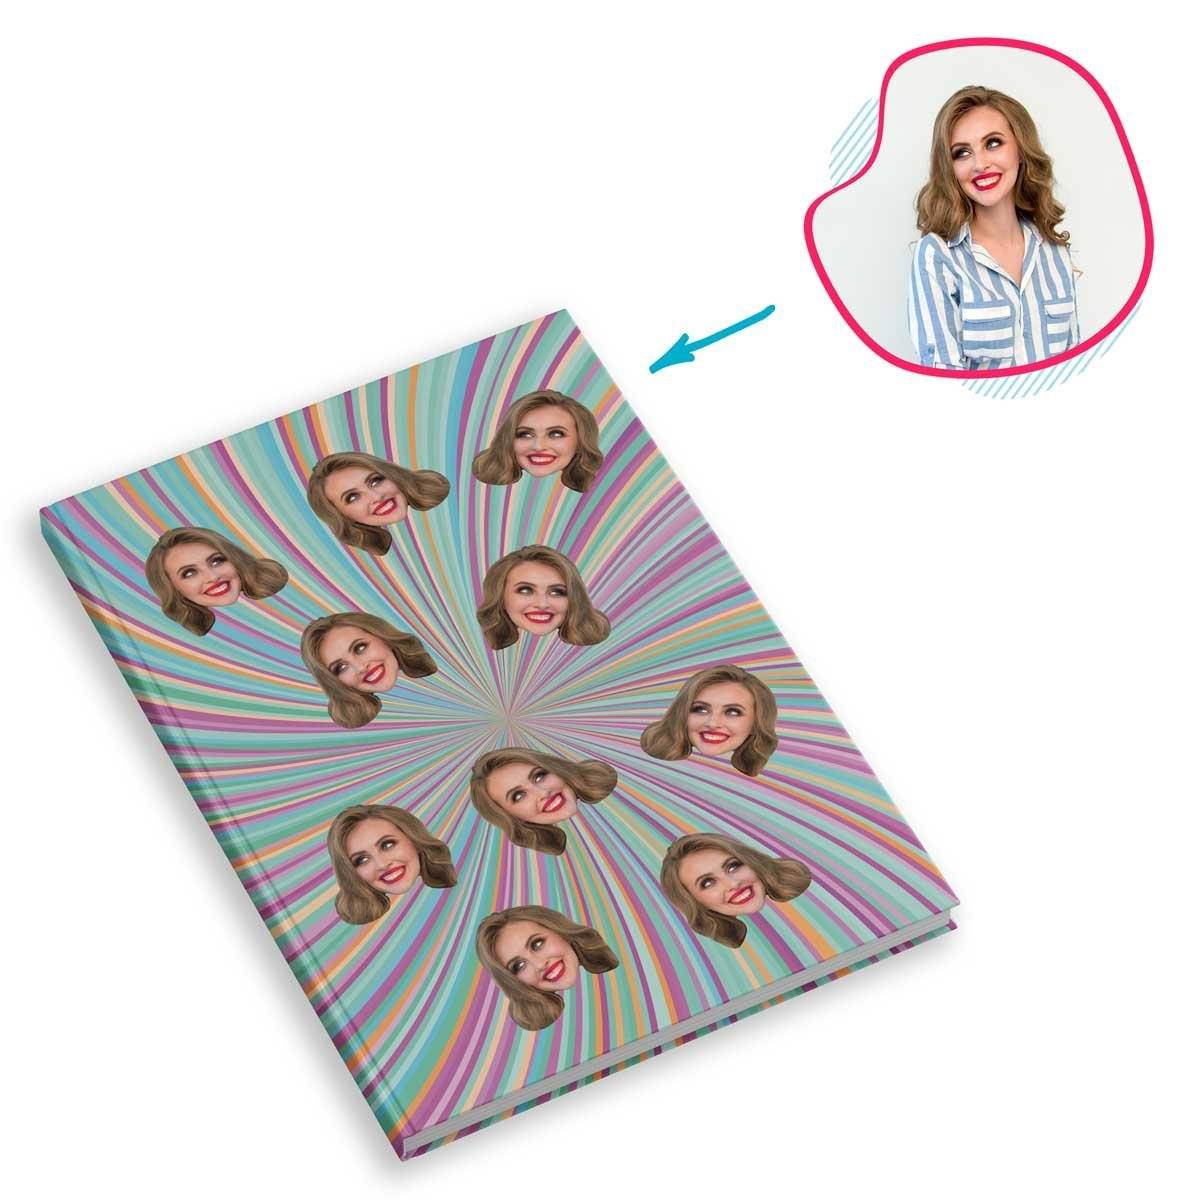 fantasy Fantasy Notebook personalized with photo of face printed on them